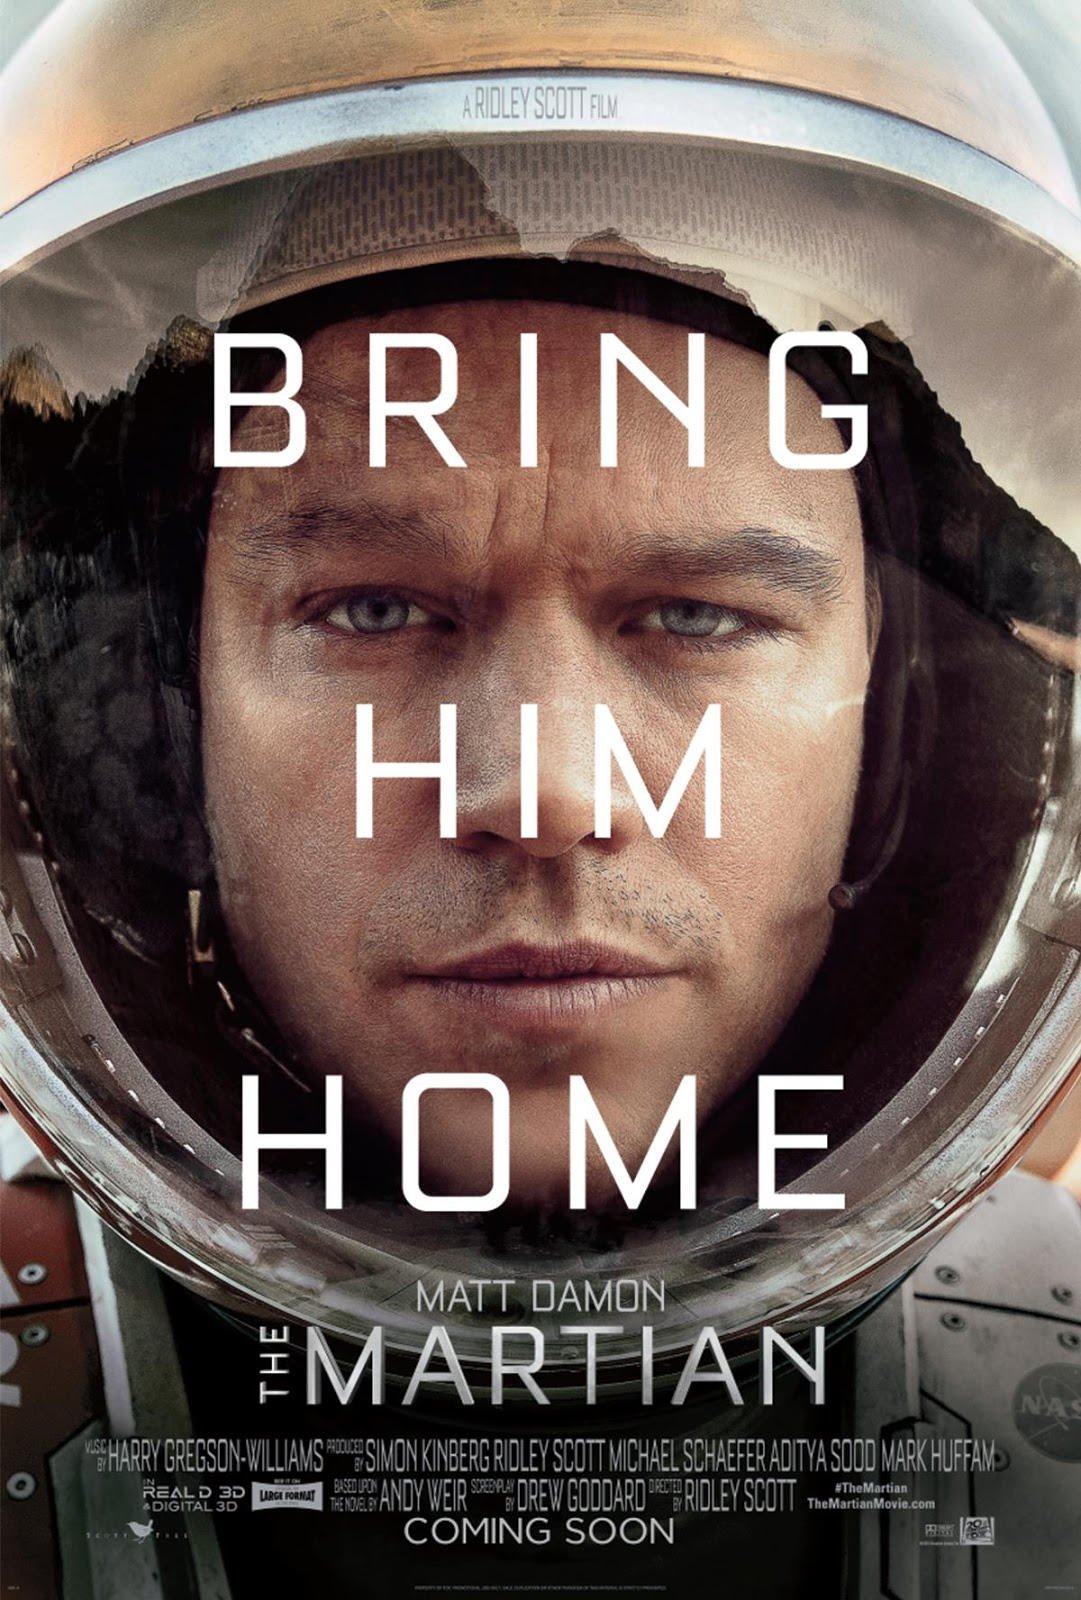 The Martian #BringHimHome